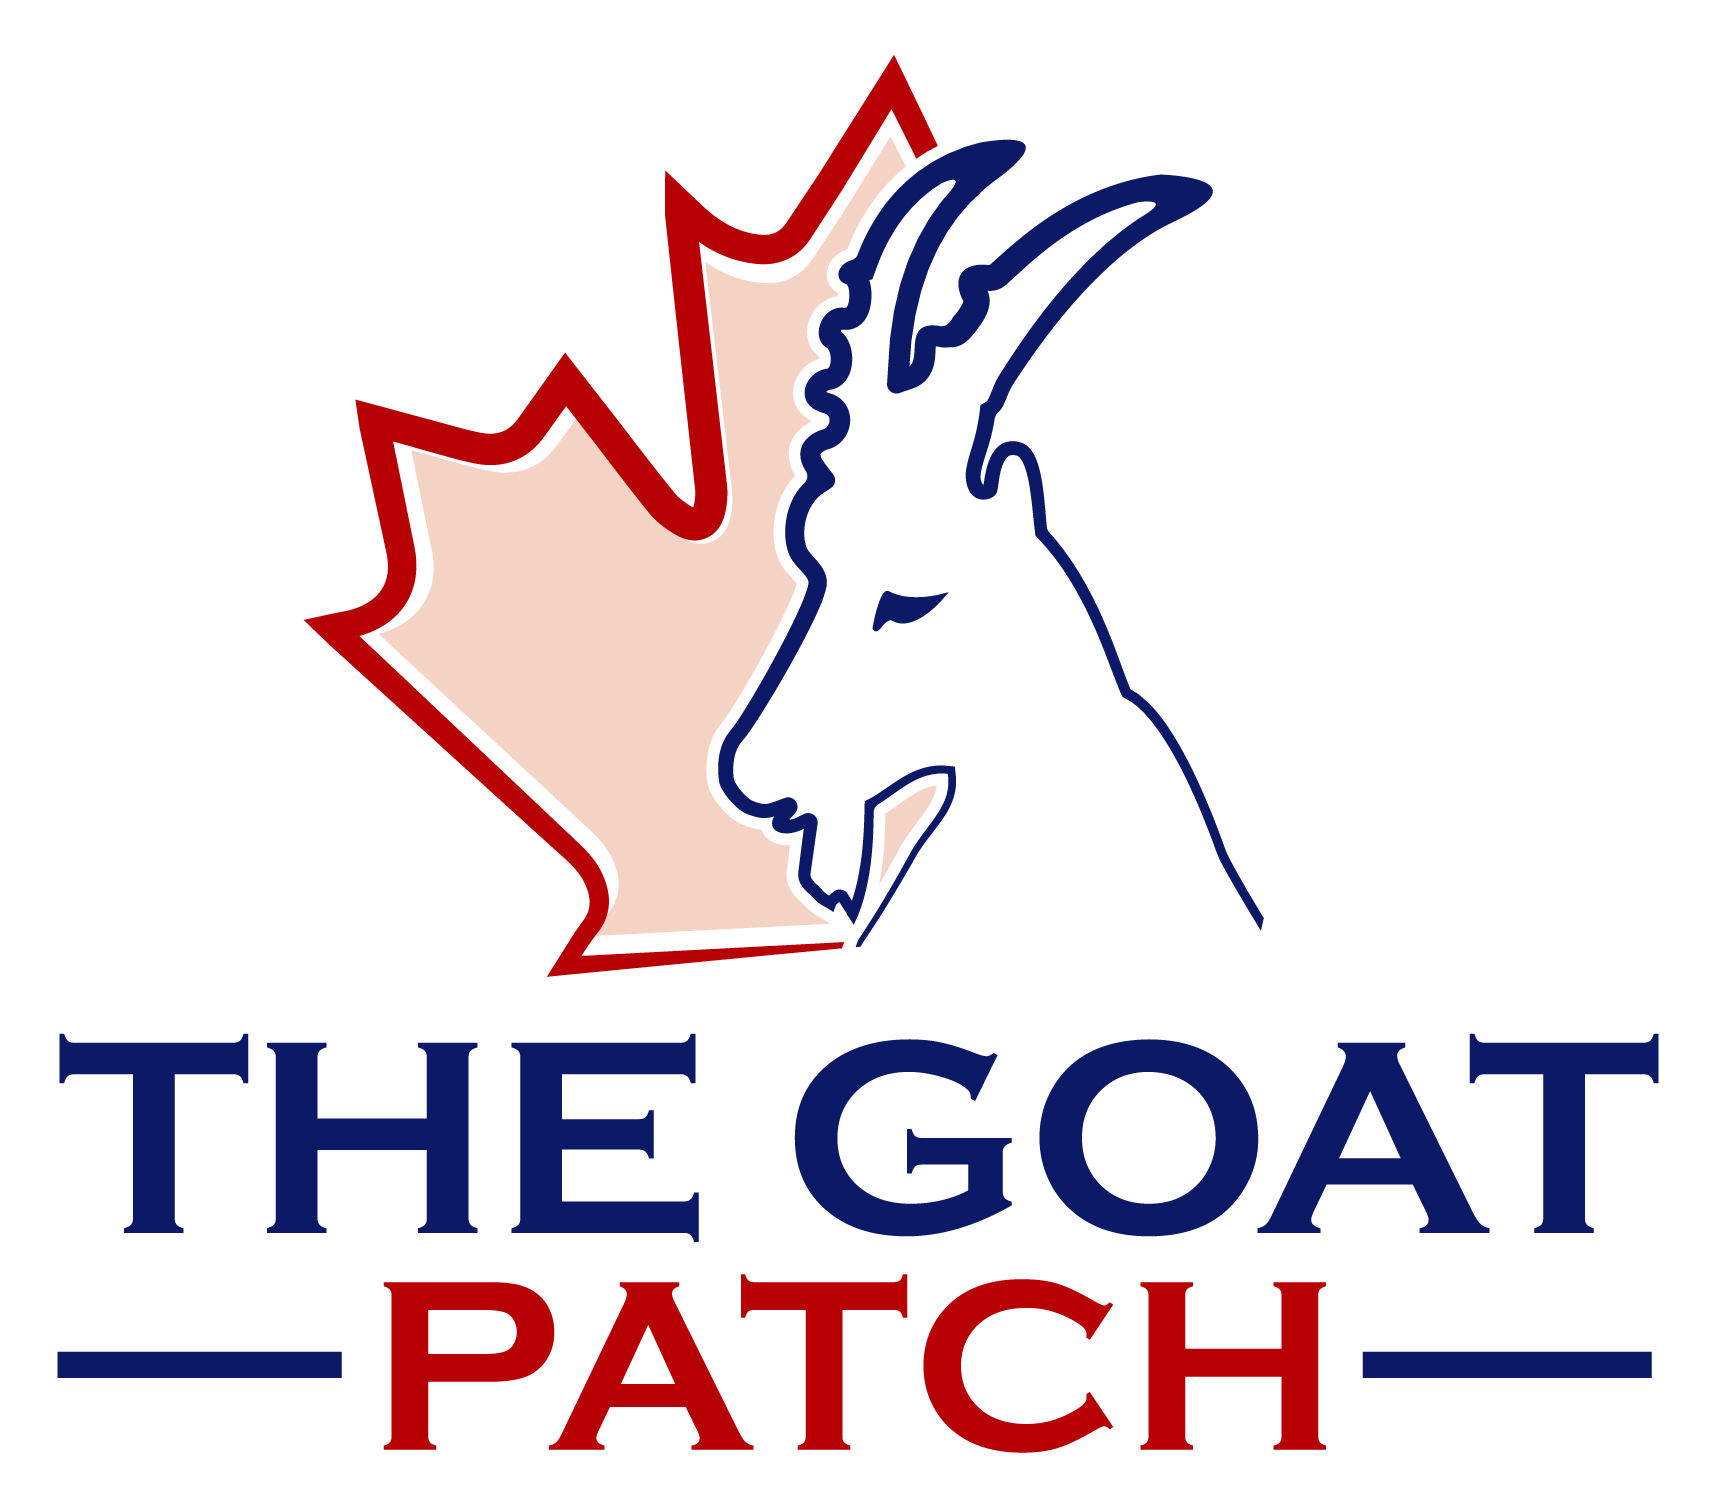 The Goat Patch logo